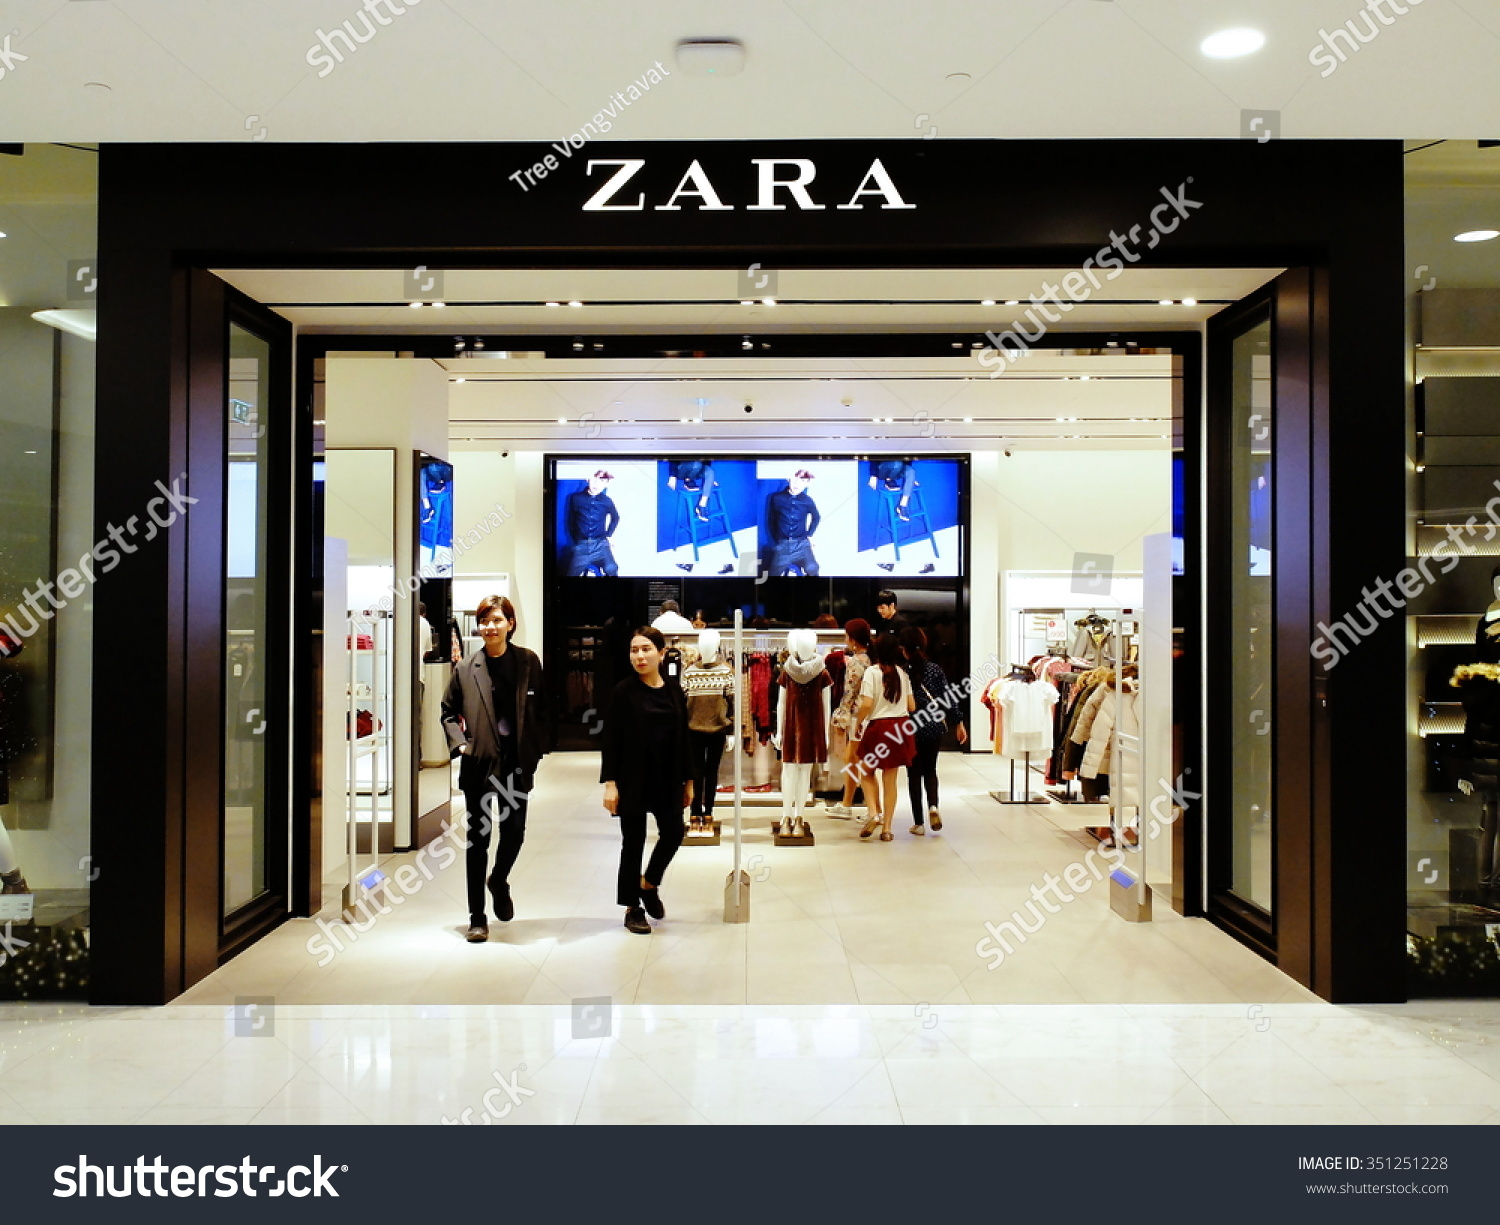 zara boutique clothing store as subsidiary Zara final presentation 1  • zara is a spanish clothing retailer • 1700 stores • 78 countries worldwide• zara practices fast fashion – trends moves from .